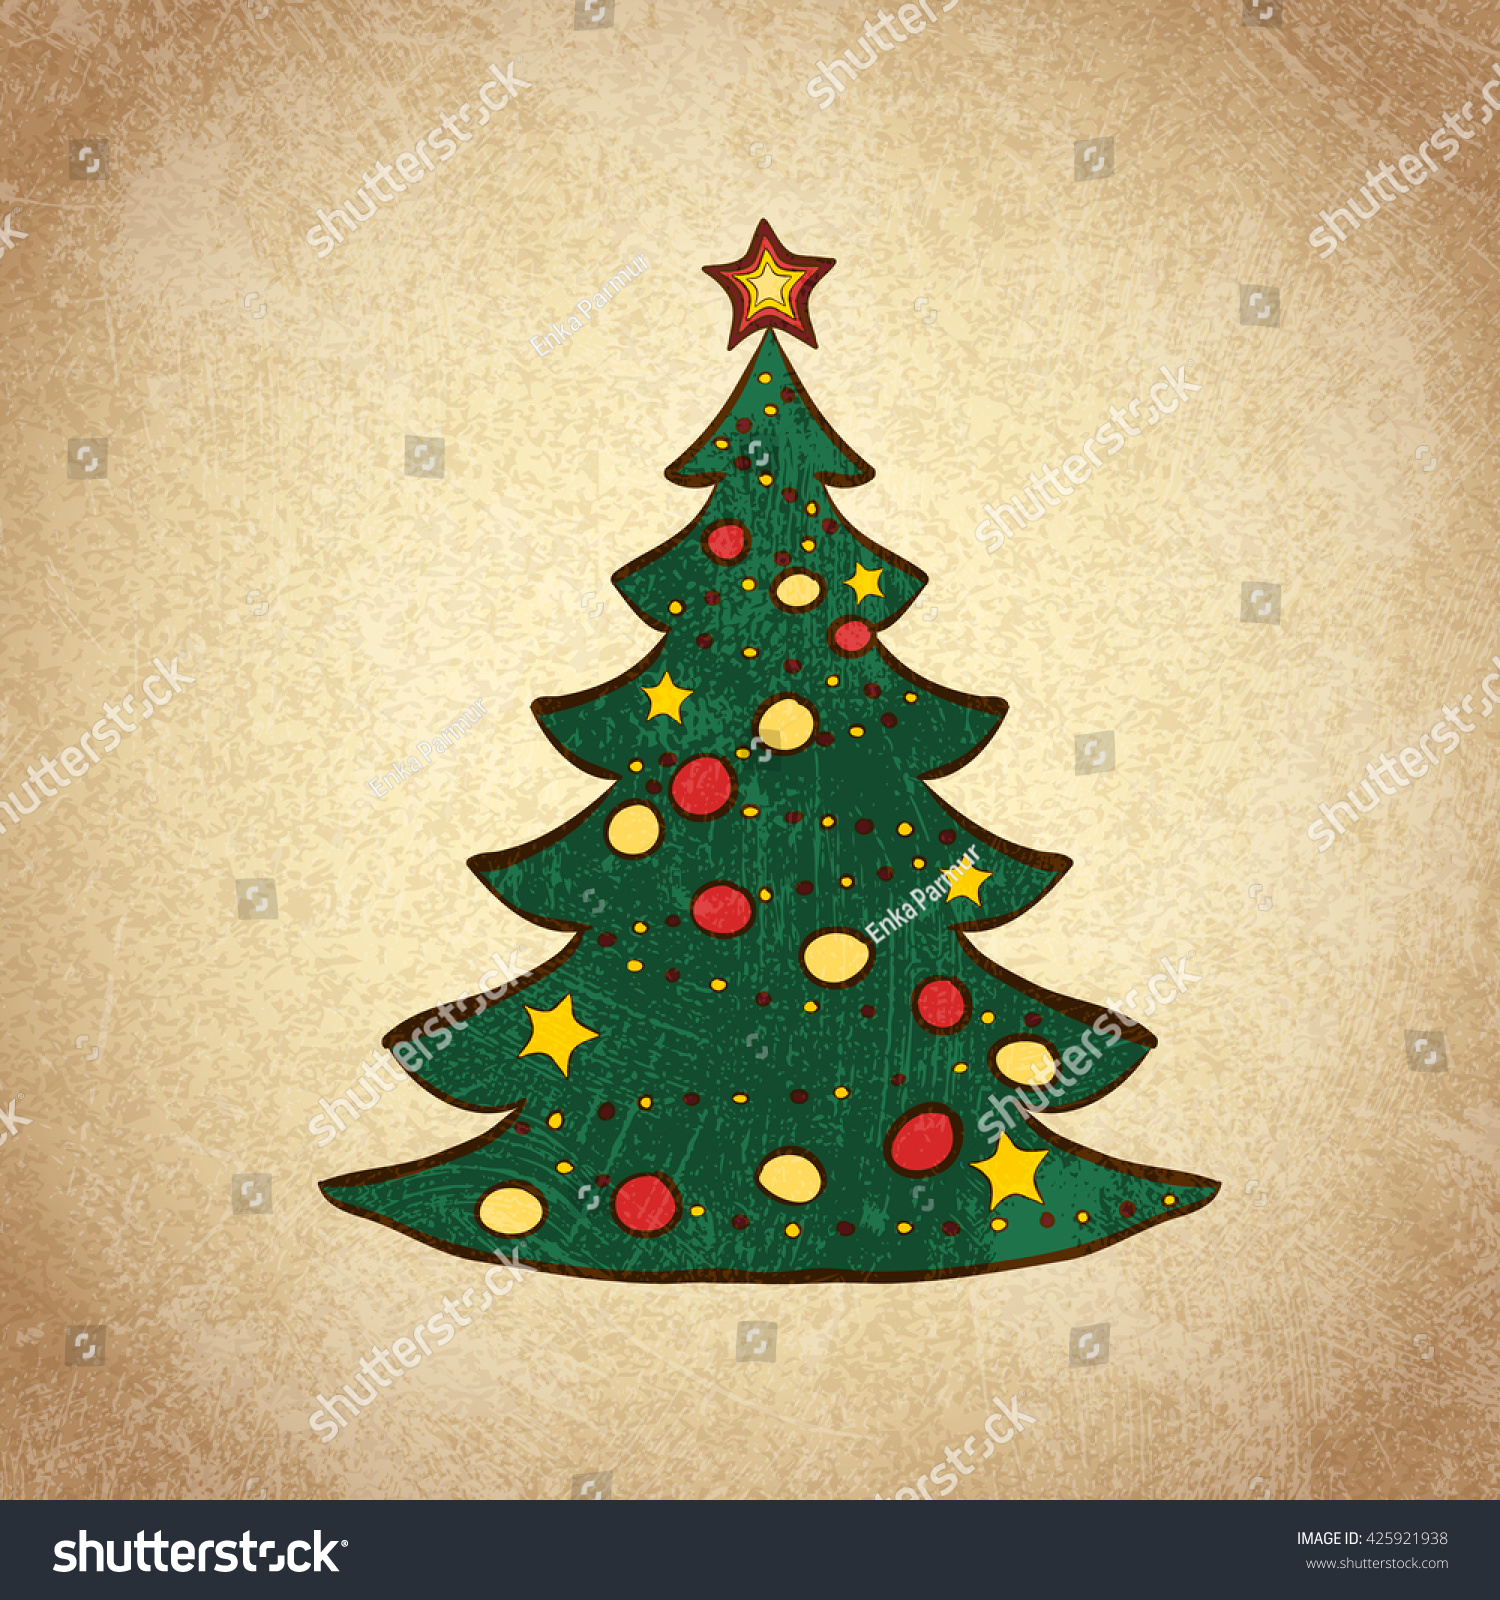 Cute Pictures Of Christmas Trees To Color Photos - Entry Level ...